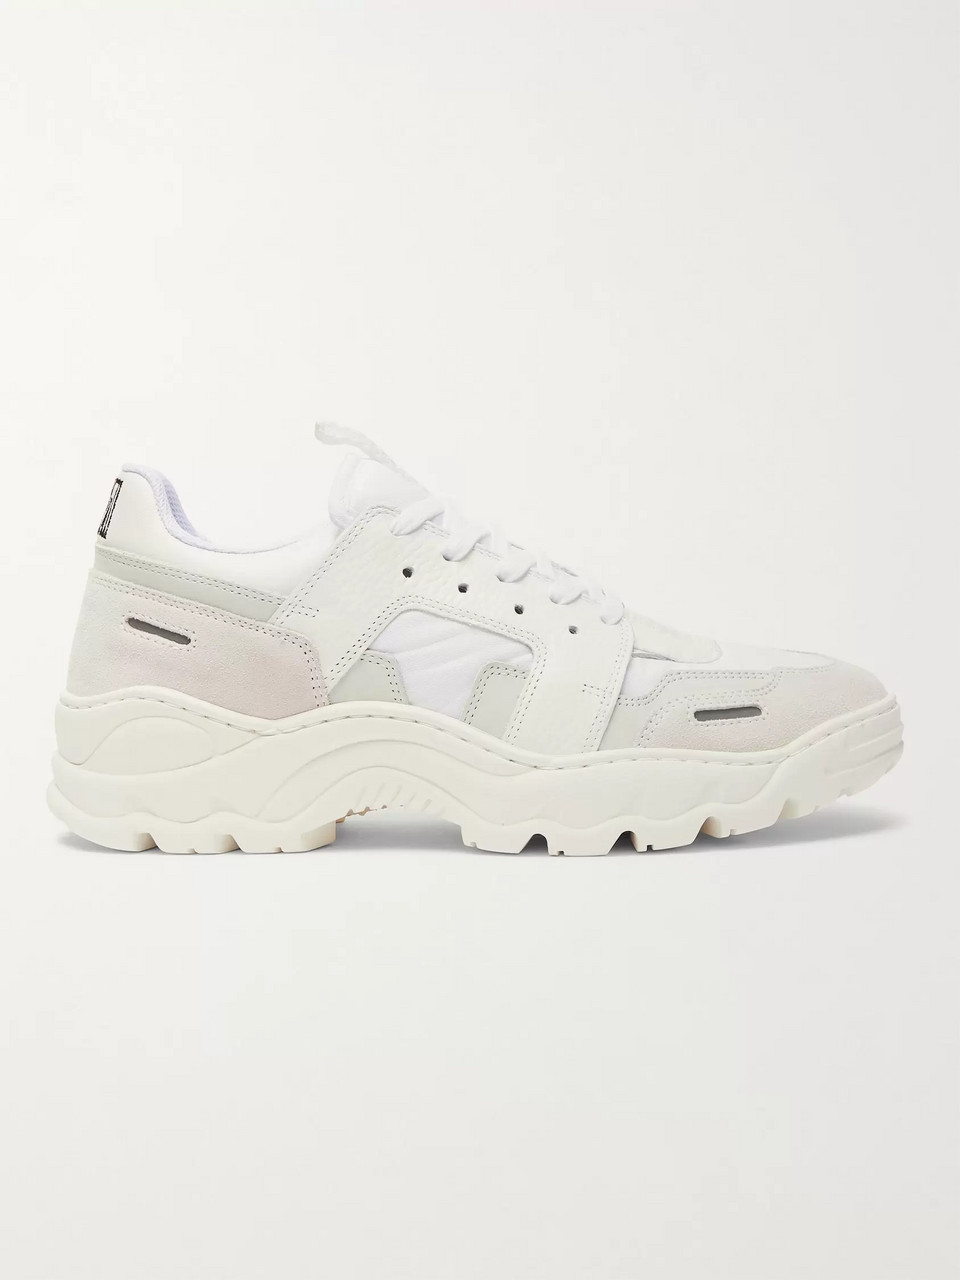 AMI Lucky 9 Nylon, Leather and Suede Sneakers